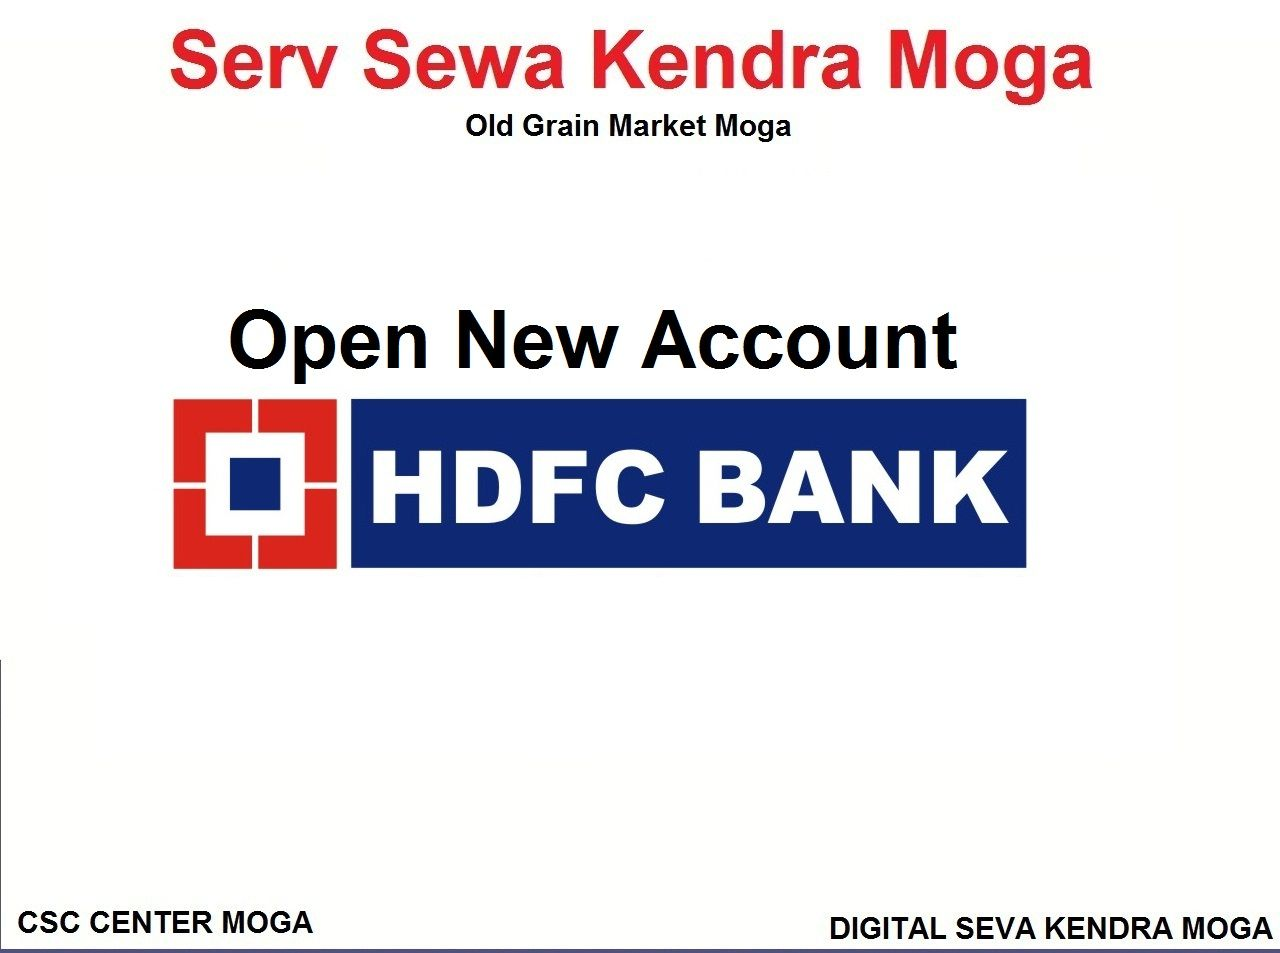 Open Hdfc Bank Account In Moga In 2020 Government Services Accounting Voter Card